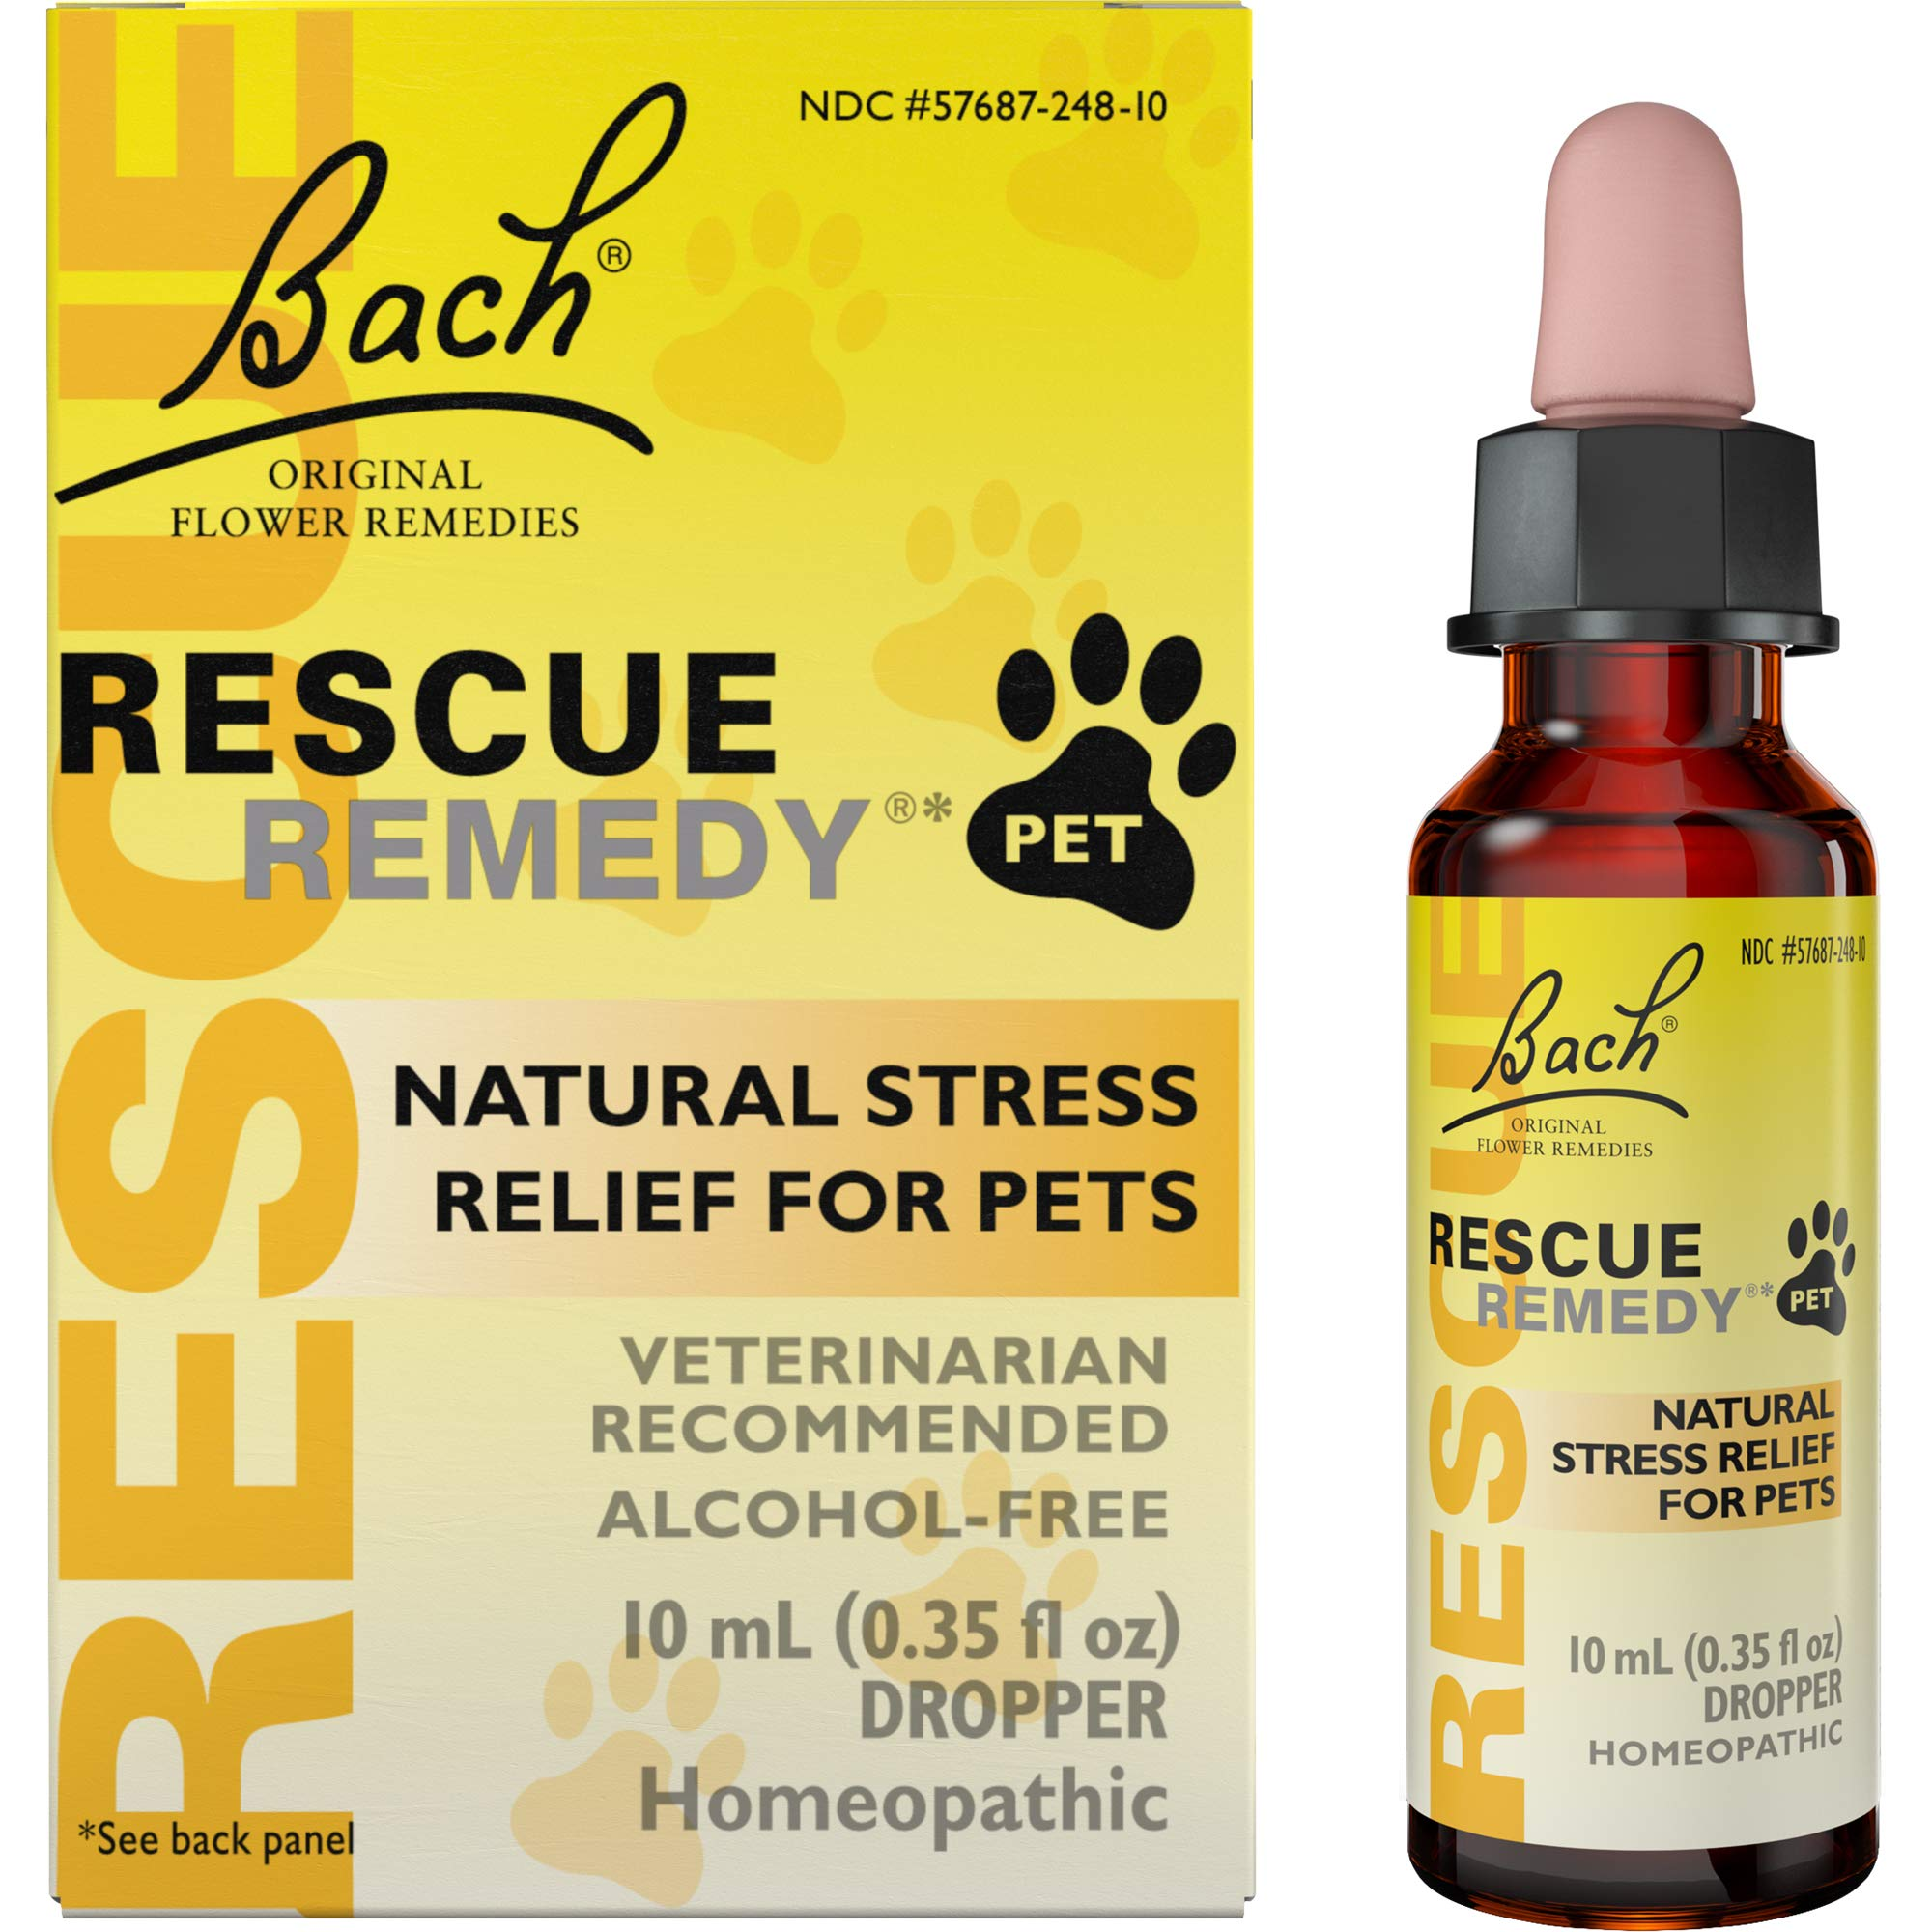 REScue Natural Homeopathic Stress Relief Drops for Pets